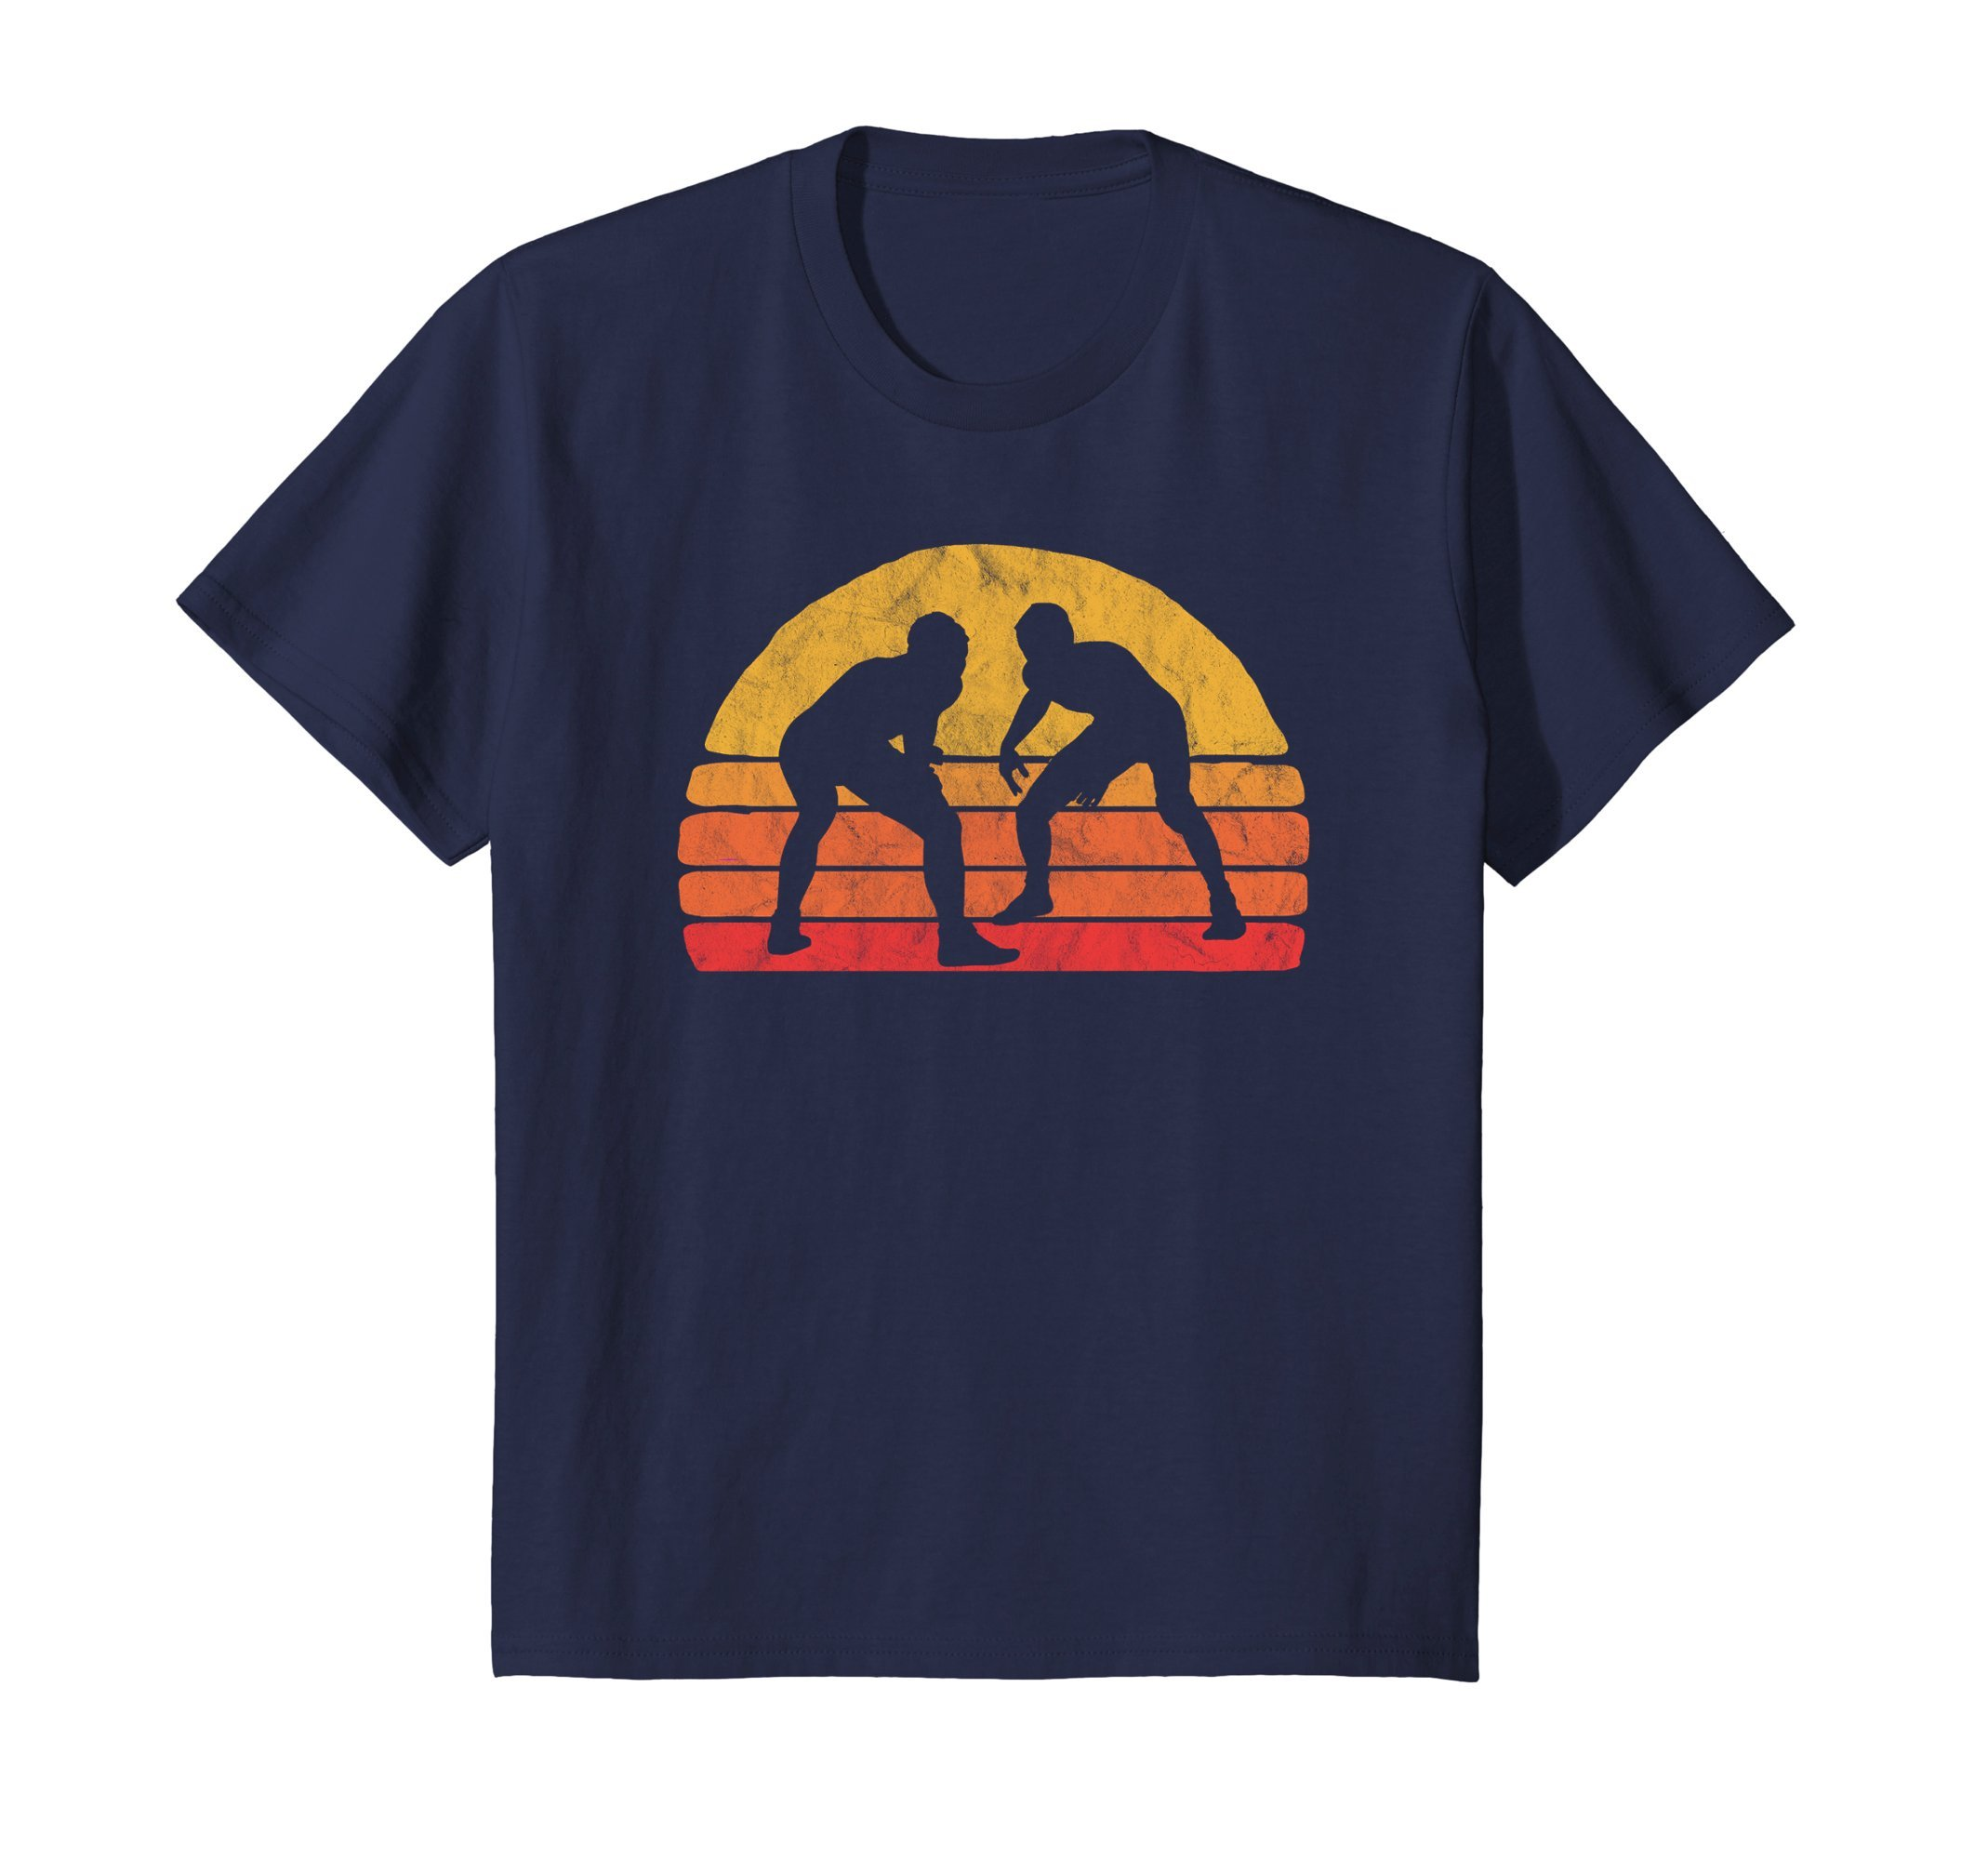 Kids Vintage Wrestling Graphic T-Shirt - Two Wrestlers and Sun 10 Navy